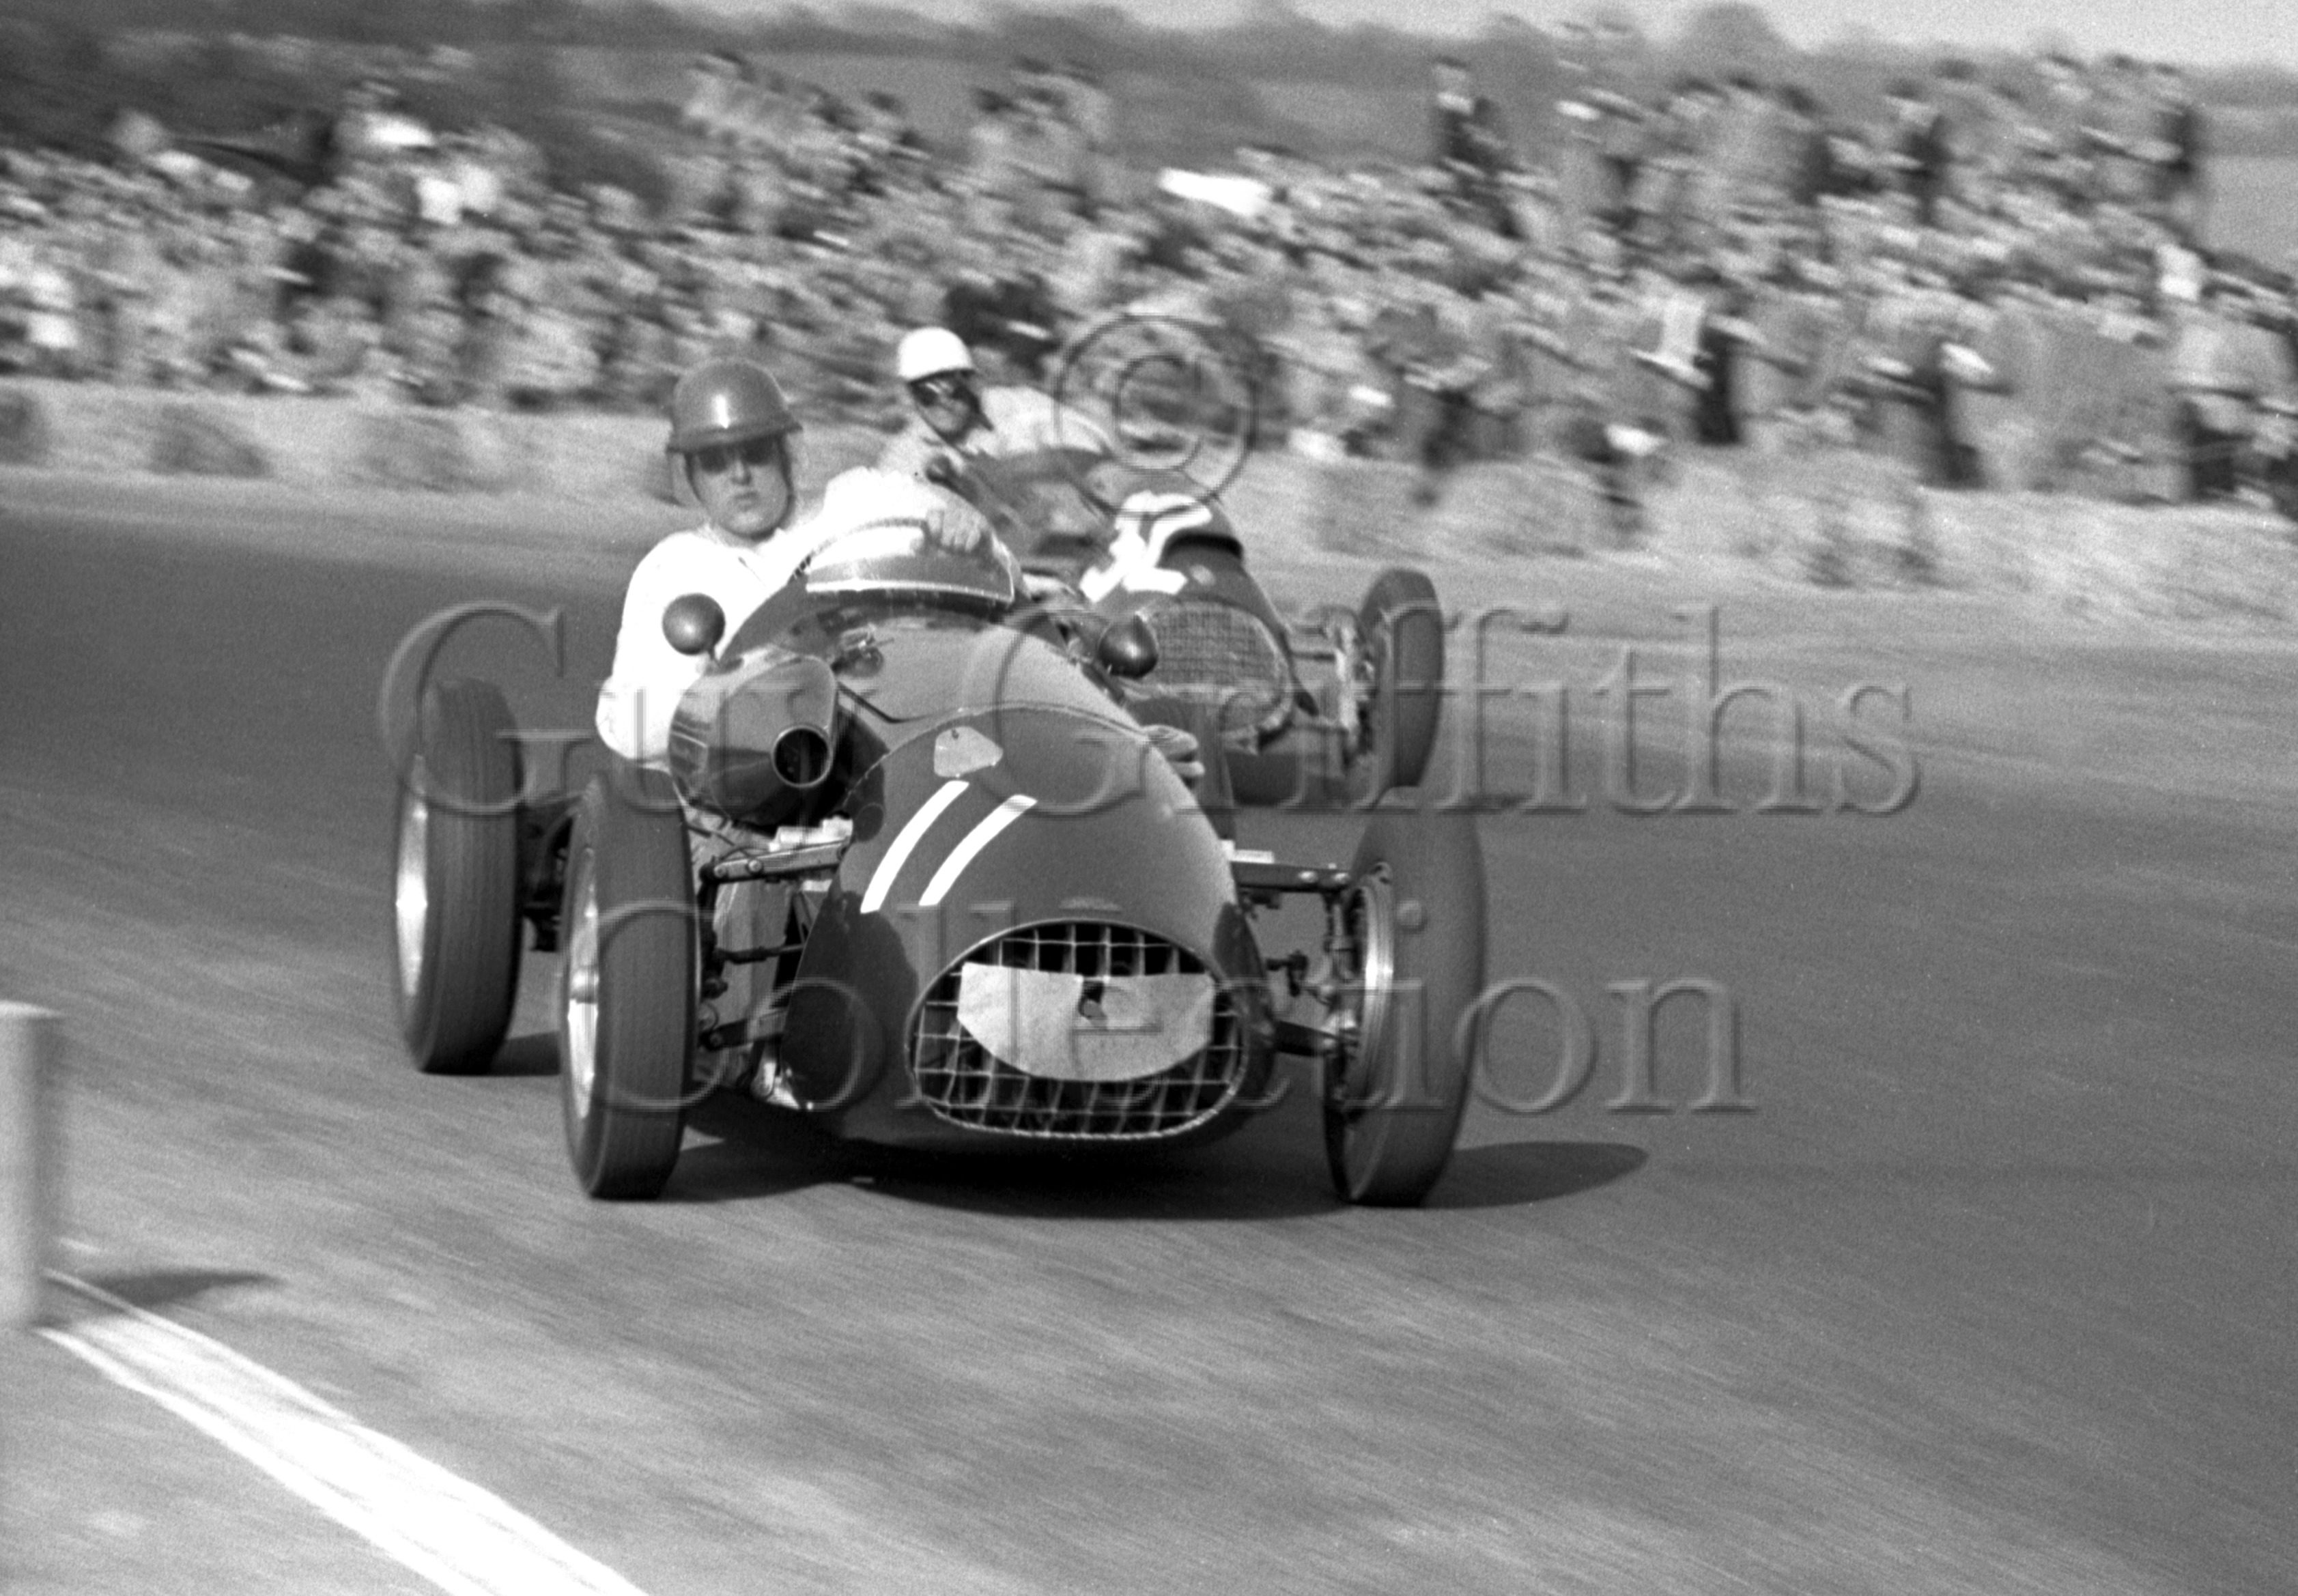 68-976–I-Stewart–Connaught–Silverstone–09-05-1953.jpg - The Guy Griffiths Collection